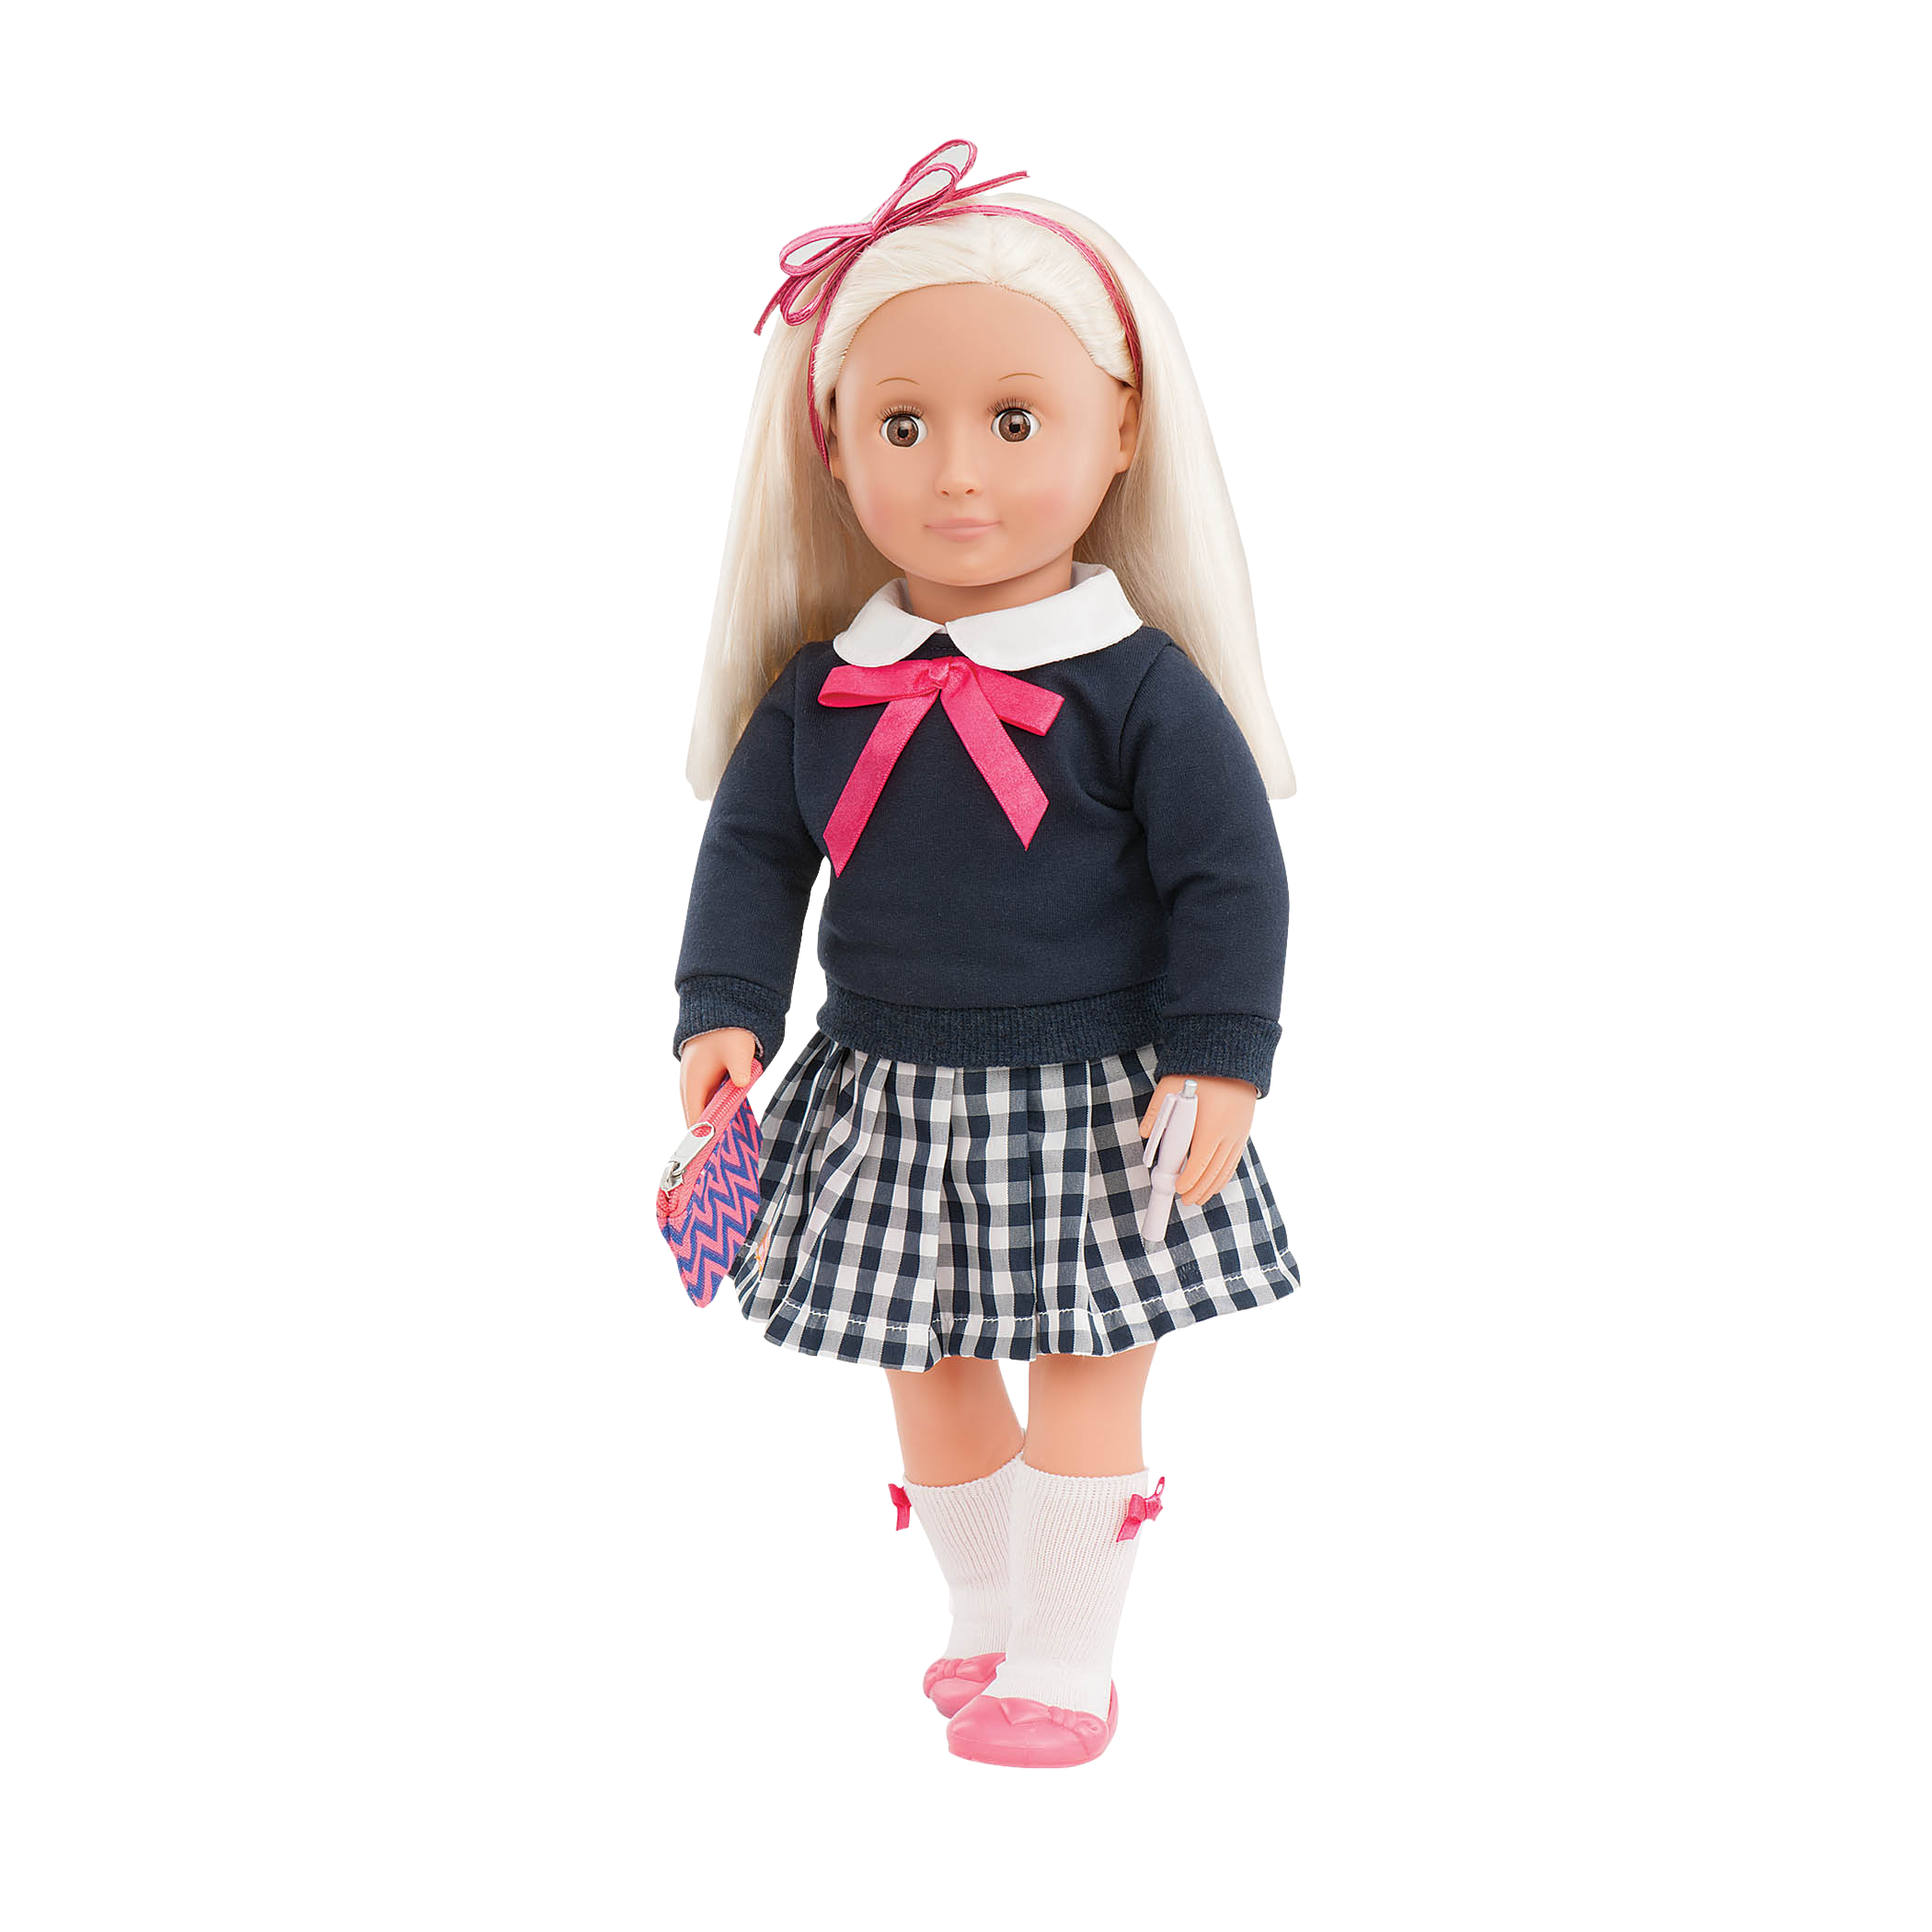 Pretty Preppy Leah doll wearing outfit